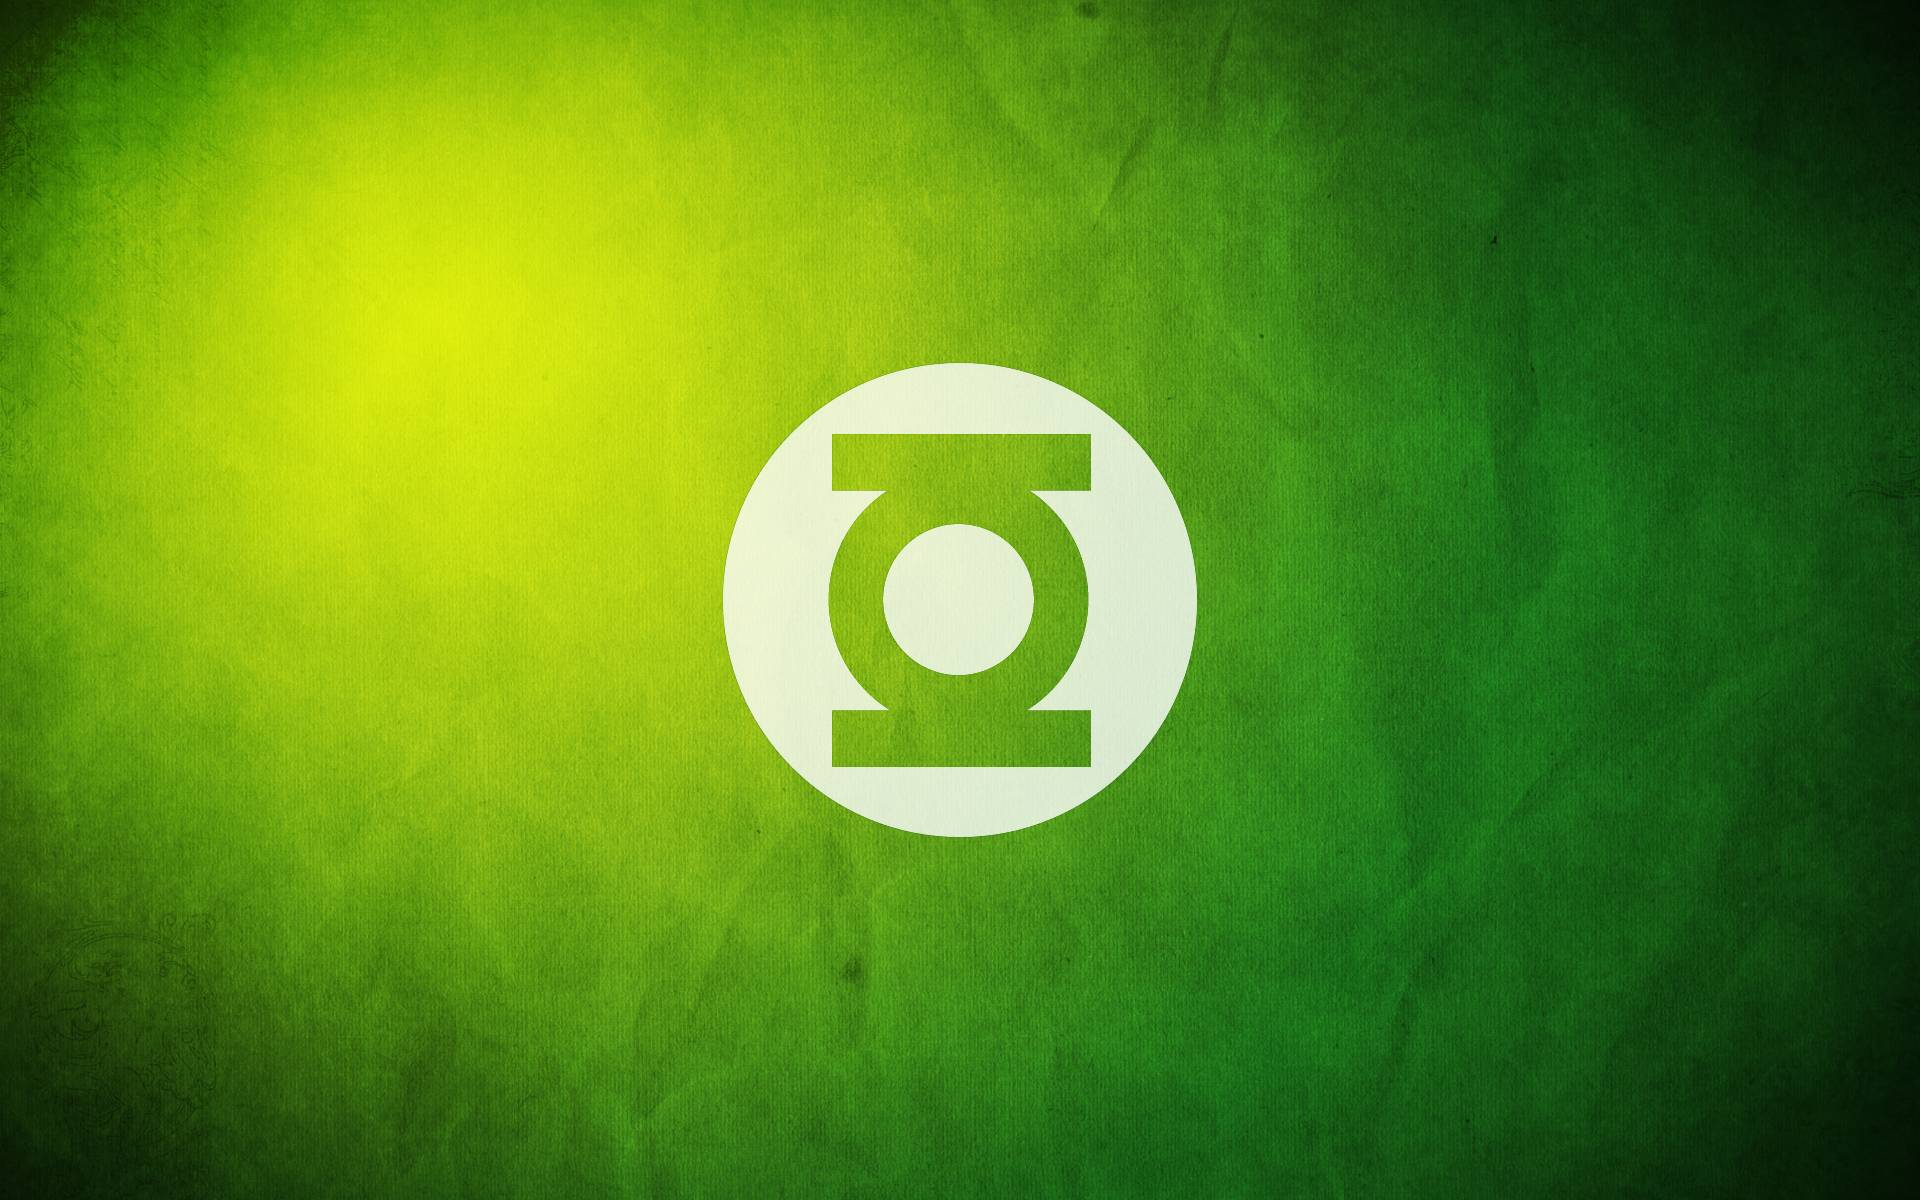 Pokemon X And Y Iphone Wallpaper Green Lantern Wallpapers Wallpaper Cave